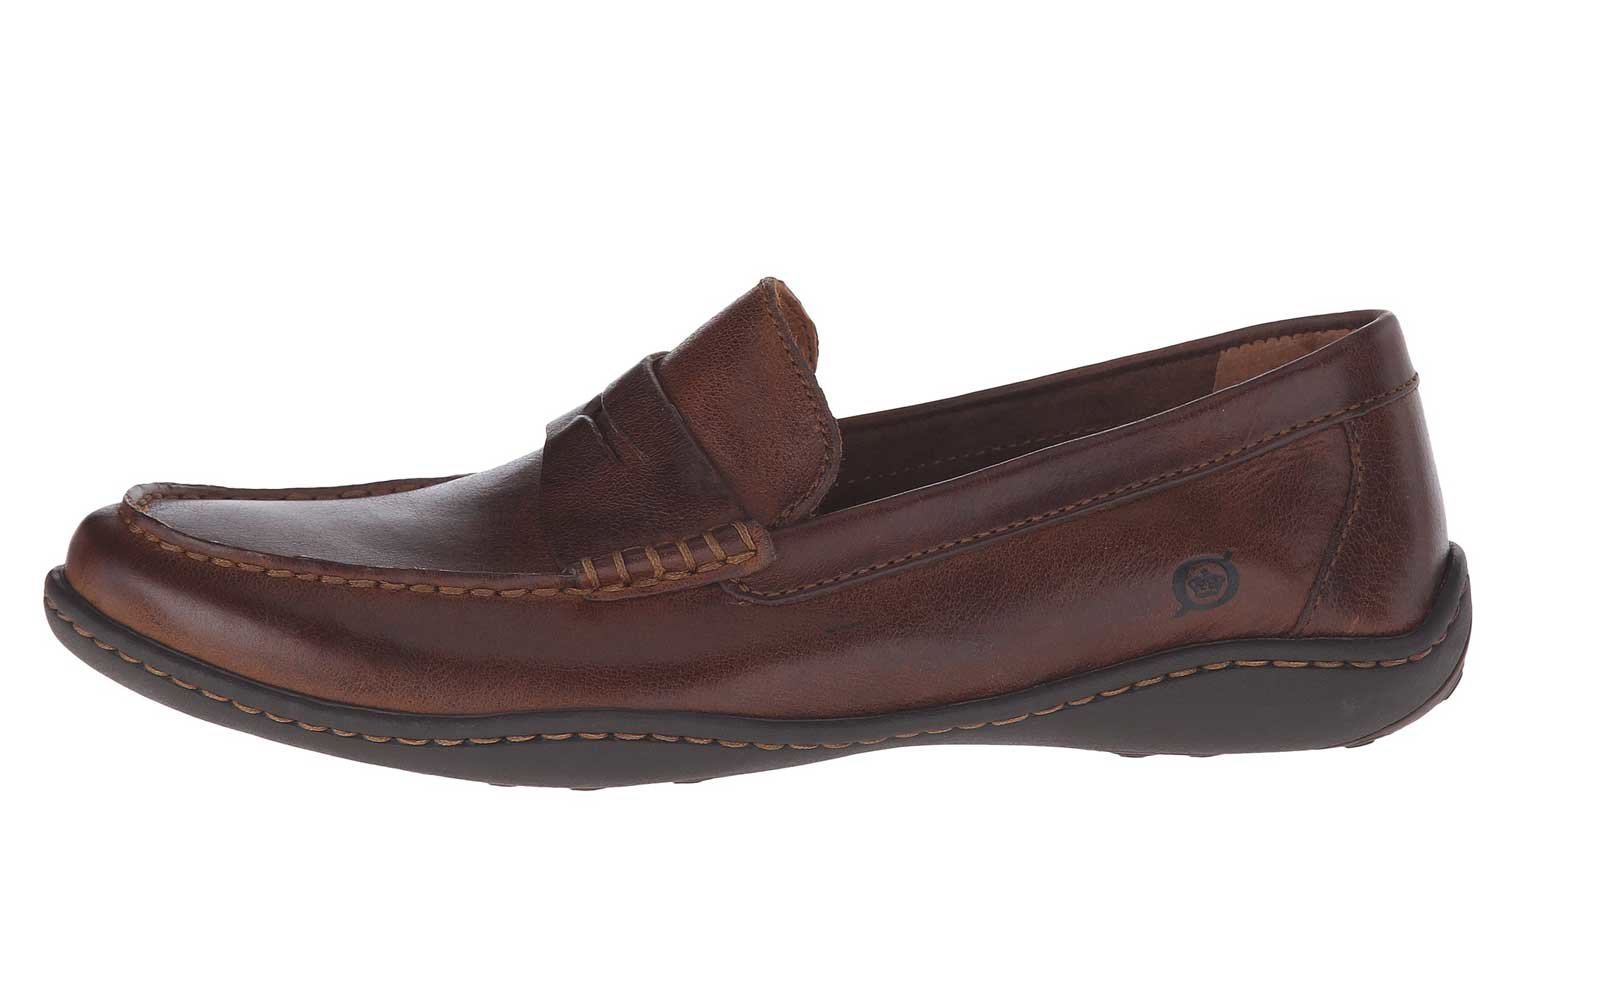 clarks loafers mens india